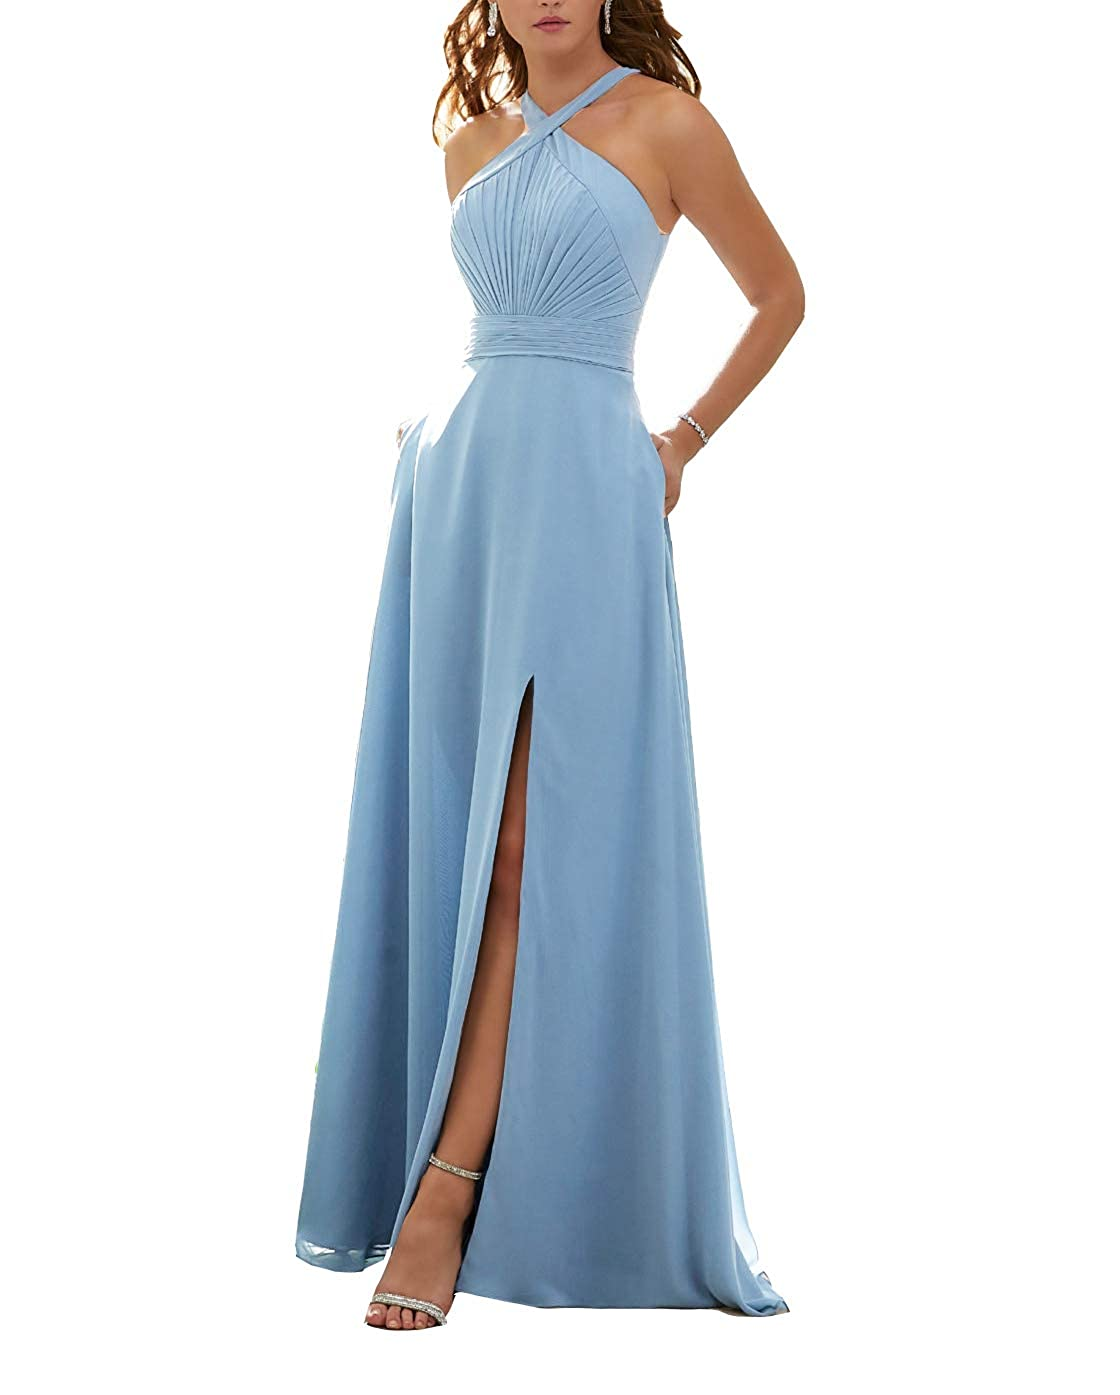 Baby bluee Stylefun Women's Halter Bridesmaid Dresses Slit 2019 Formal Prom Evening Party Gowns with Side Pockets KN010